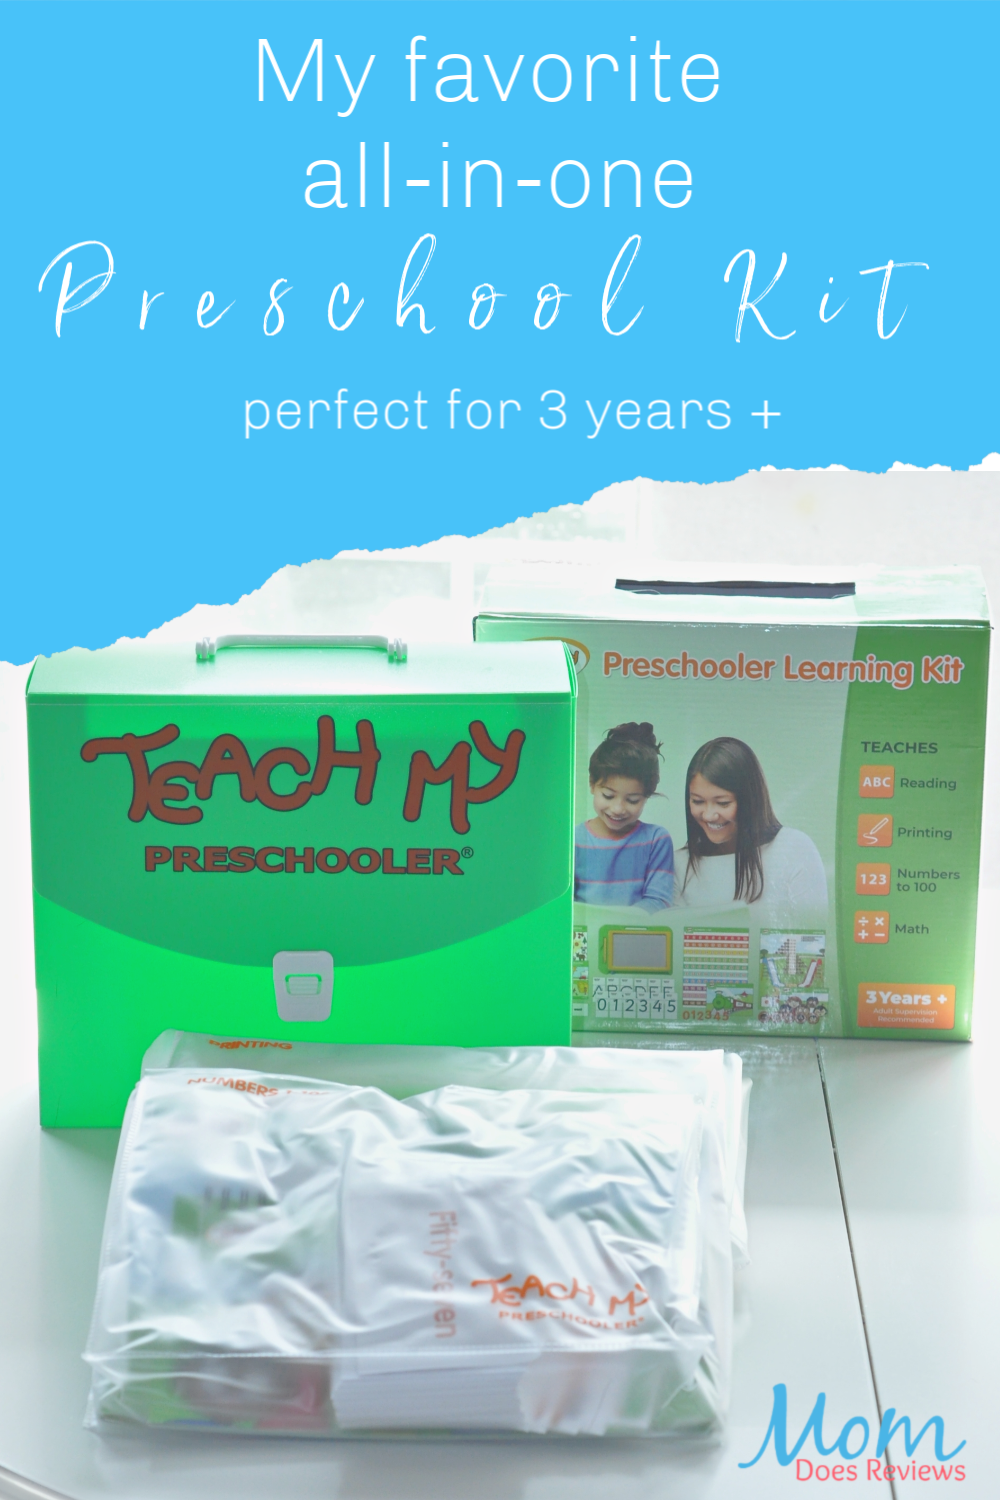 My favorite all-in-one preschool kit perfect for 3 years +